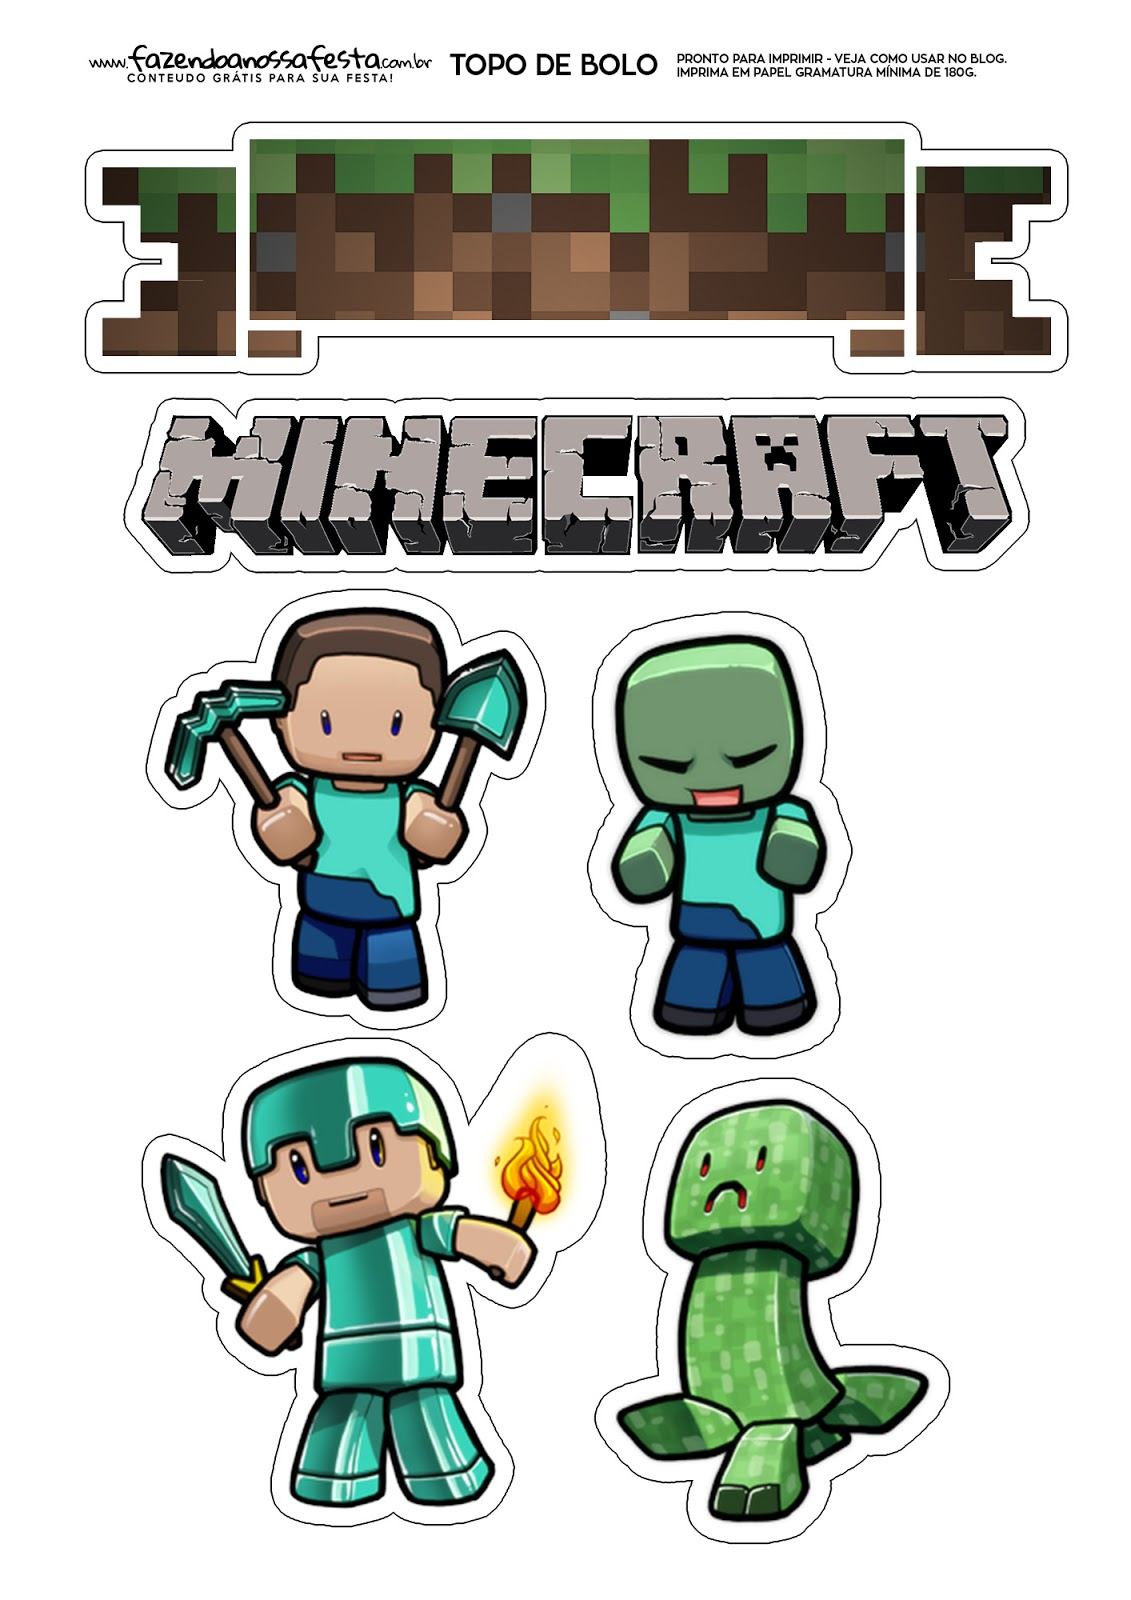 Minecraft: Free Printable Cake Toppers. - Oh My Fiesta! For Geeks - Free Printable Minecraft Cupcake Toppers And Wrappers